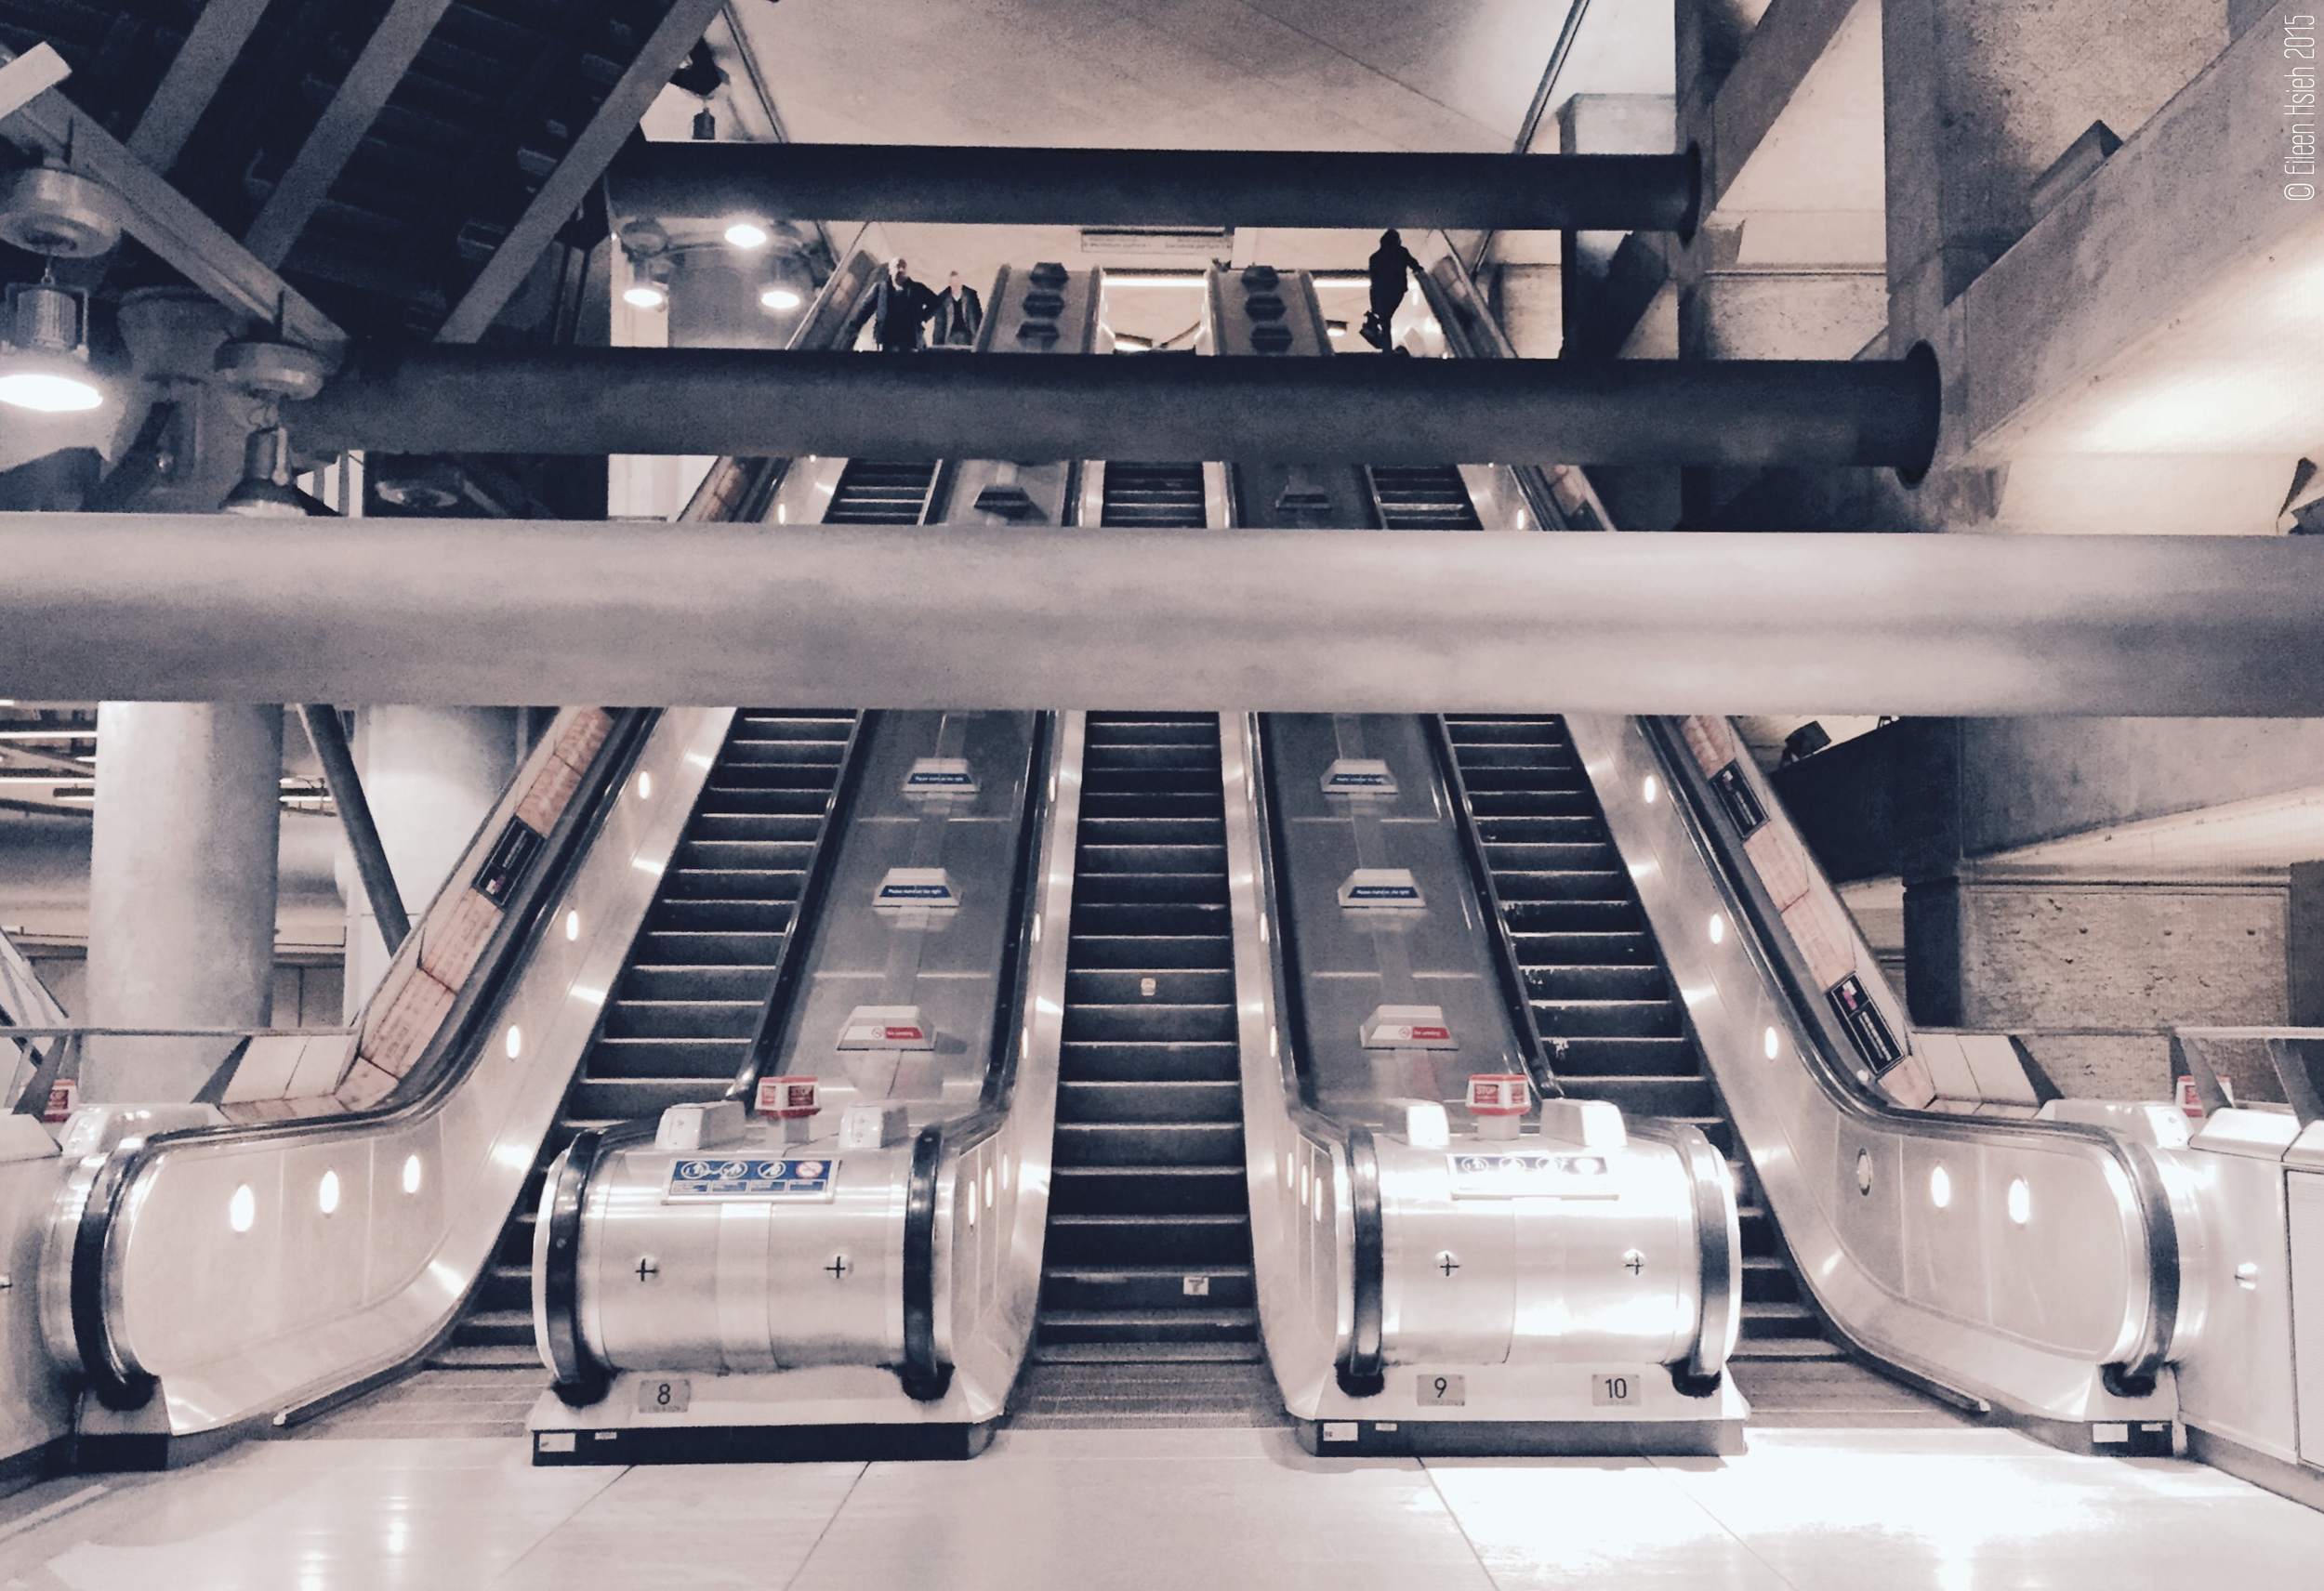 The minimalist design ofWestminster Underground Station has earned it numerous architectural accolades. © Eileen Hsieh